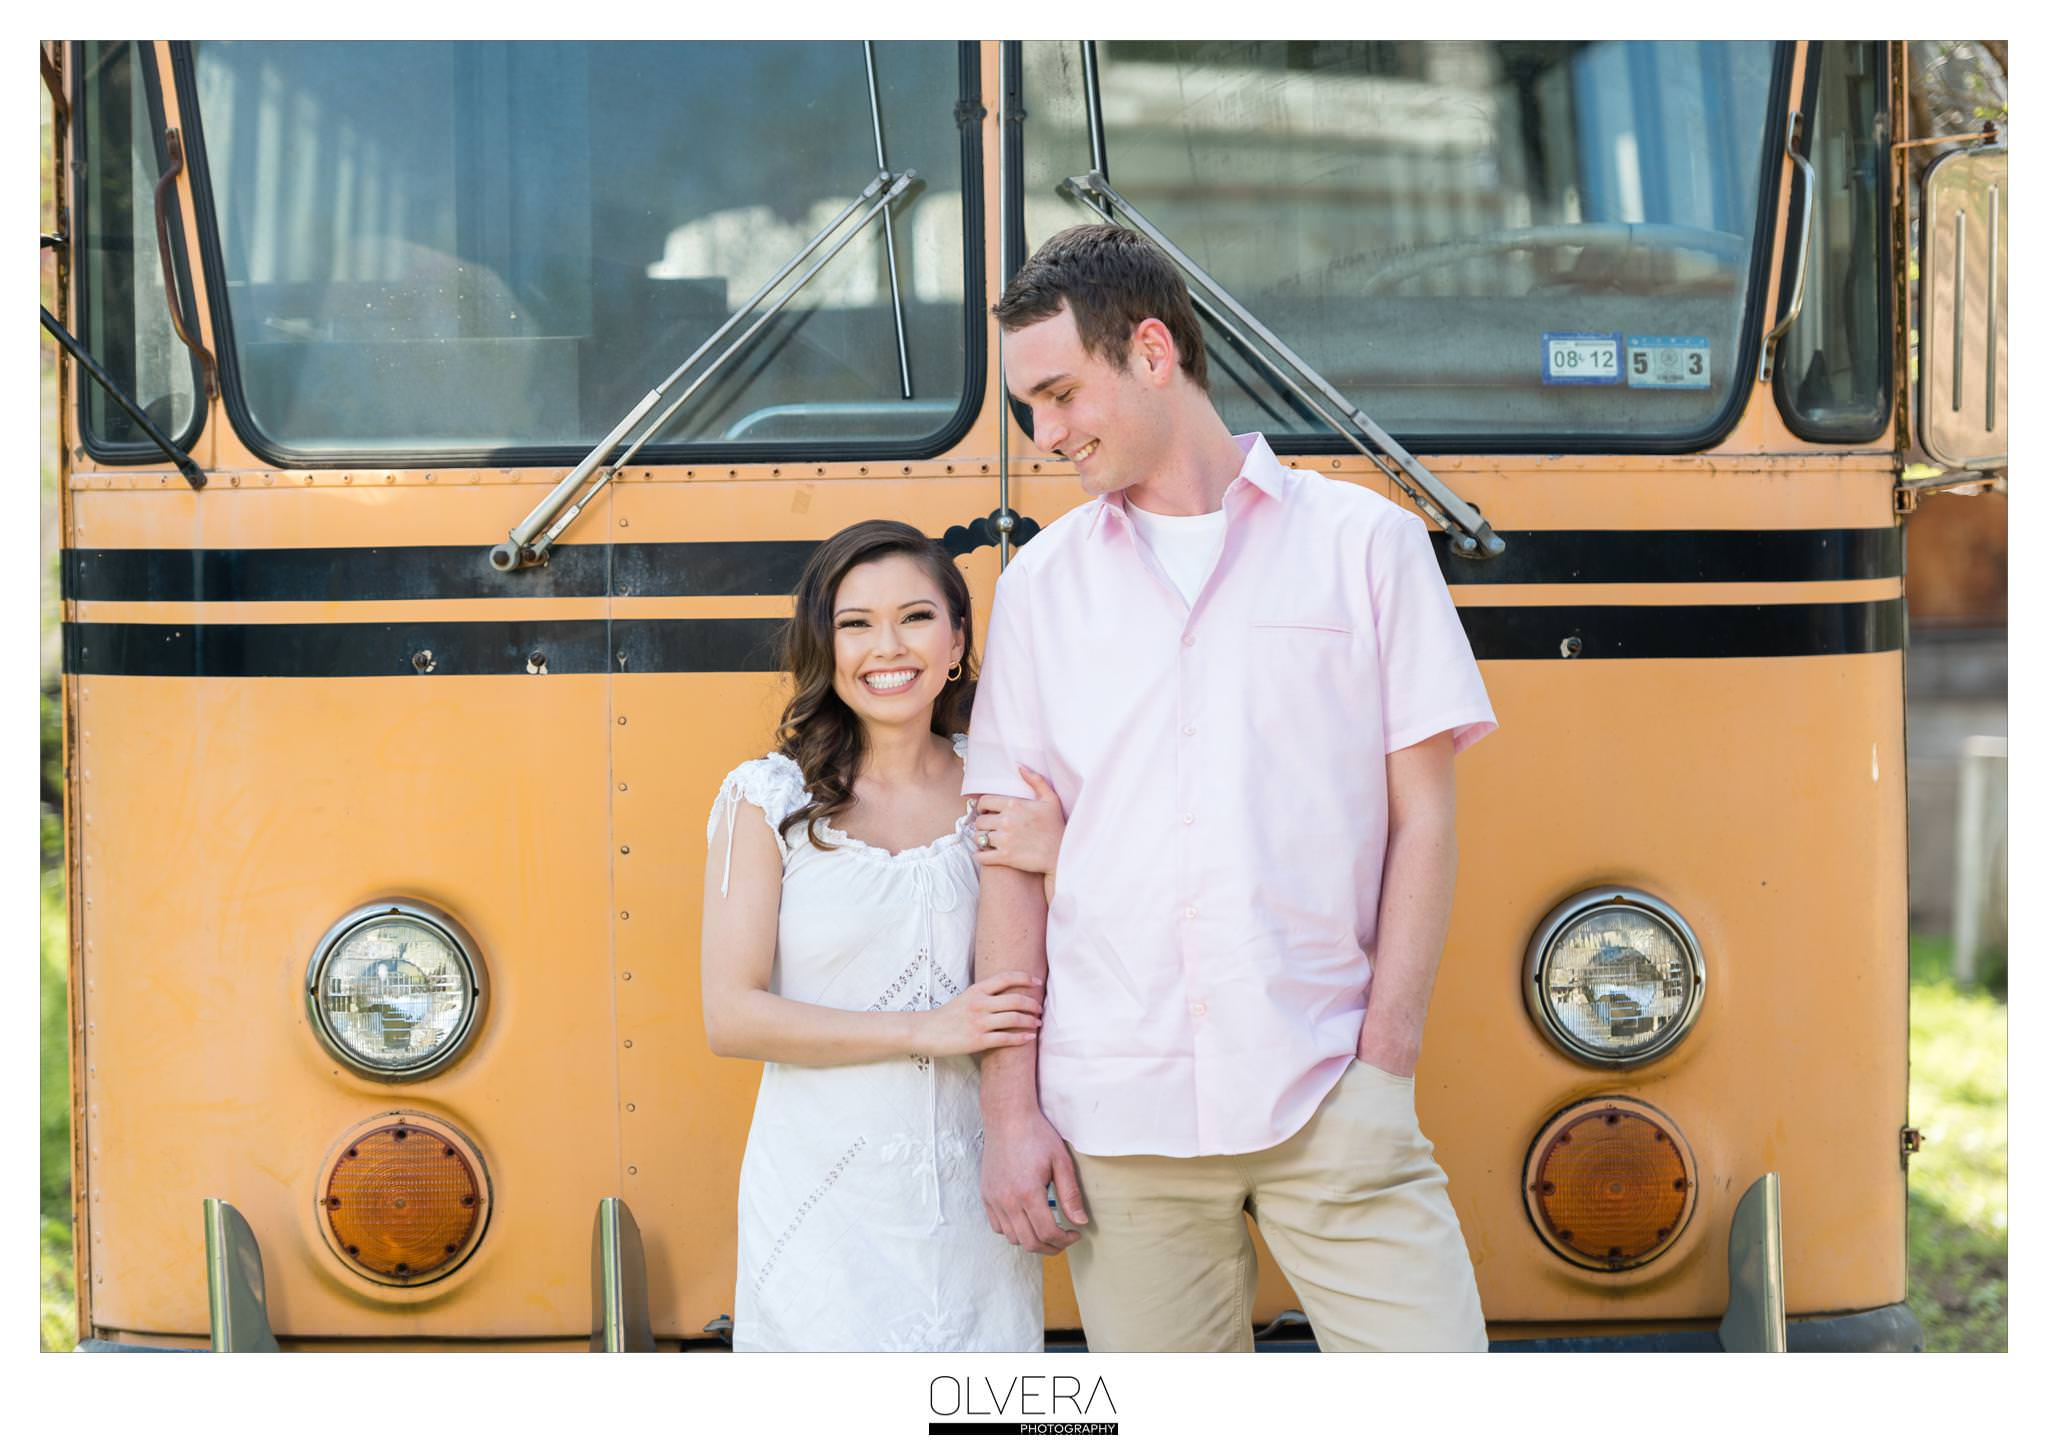 Romantic Schoolbus Engagement Photos_San Antonio Wedding Photographer 1